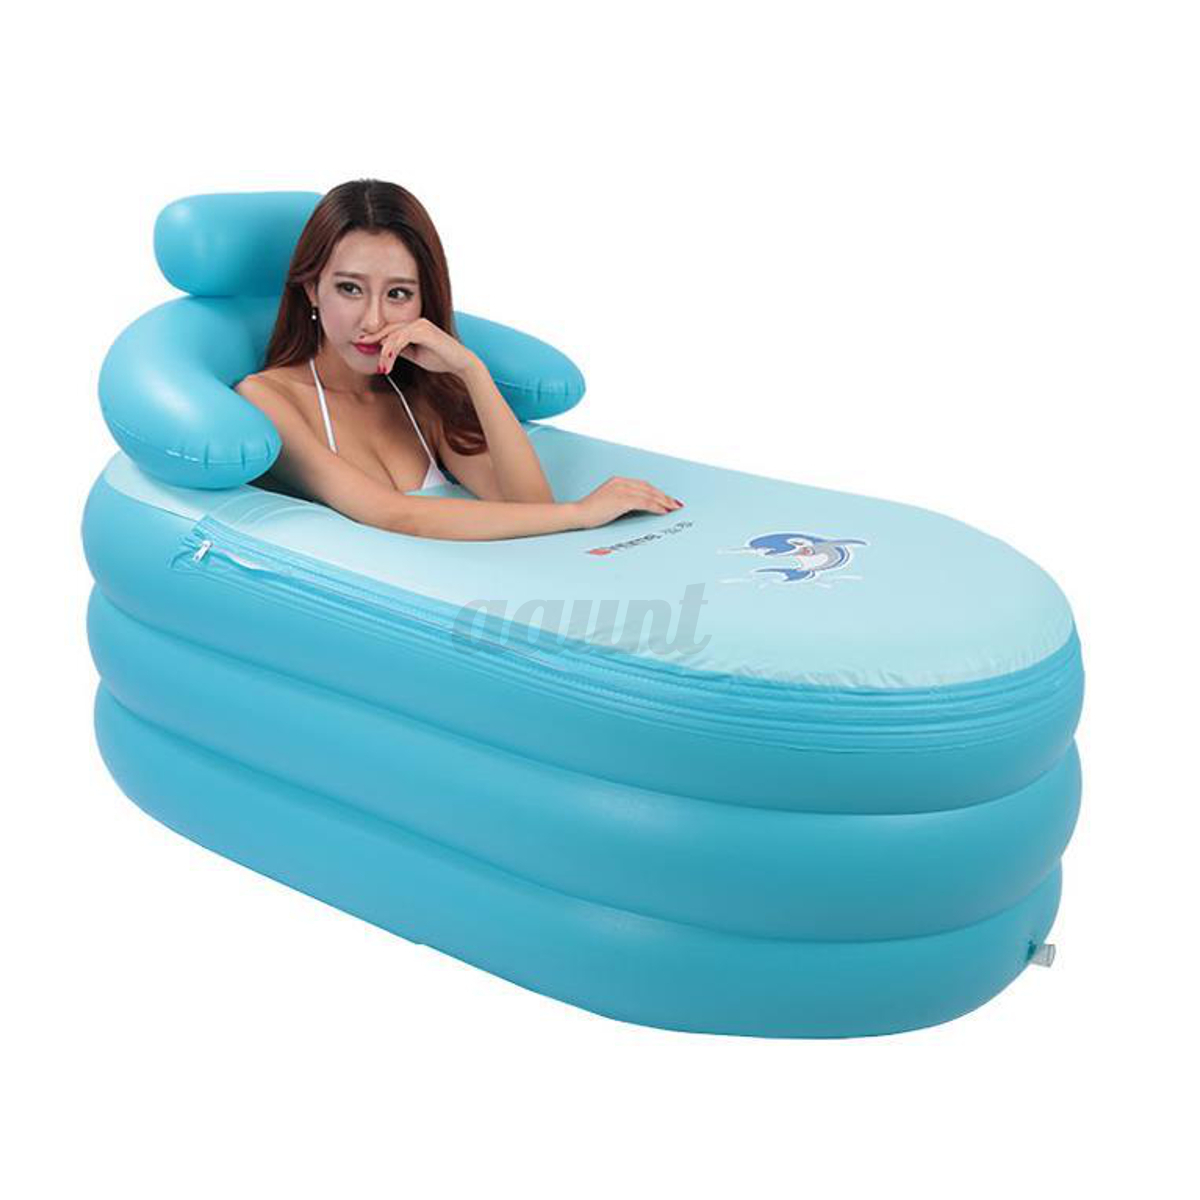 4 Sizes Adult Amp Child Spa Pvc Folding Portable Bathtub